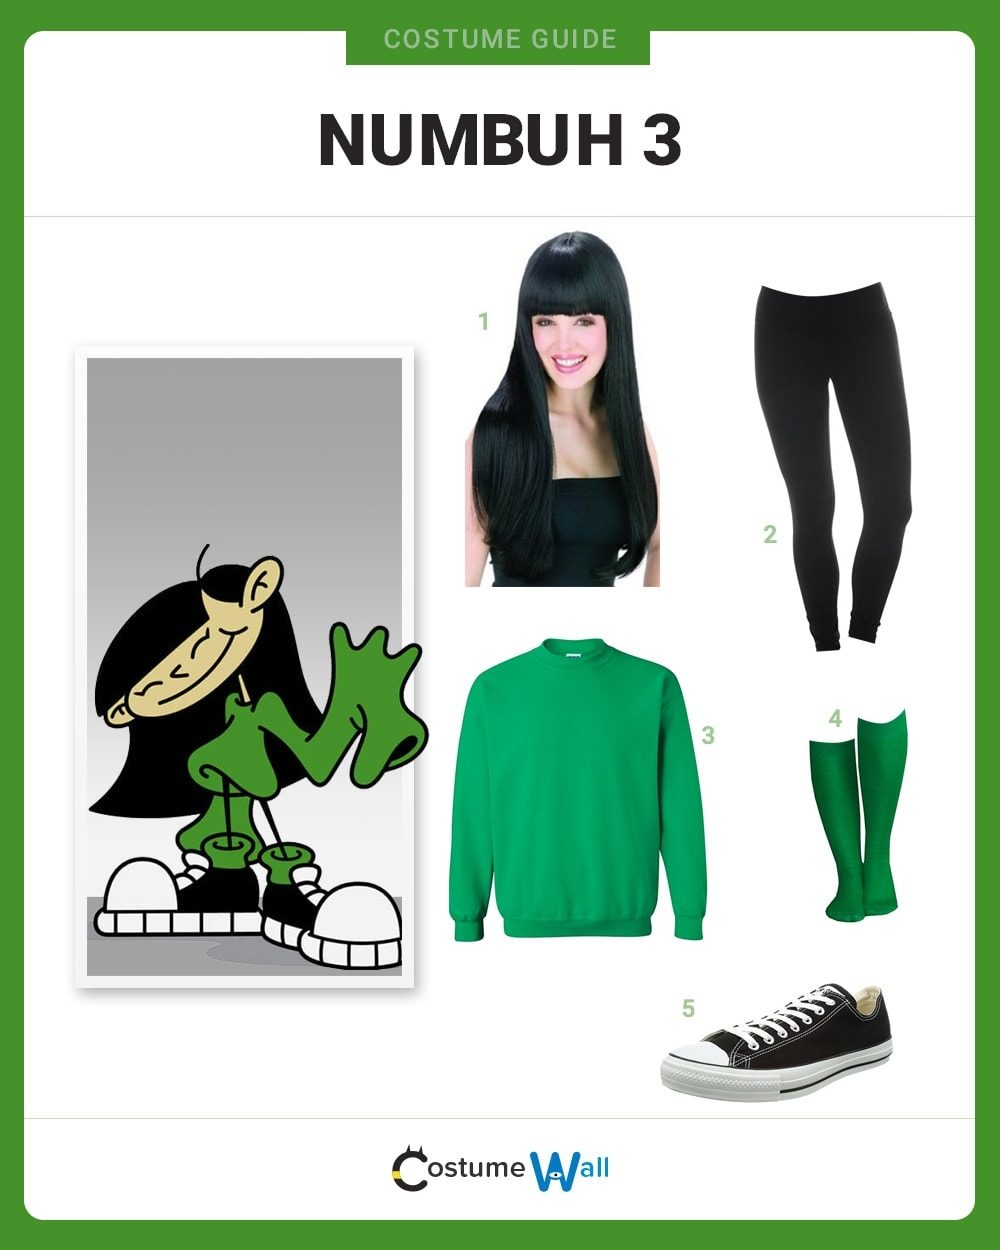 Numbuh 3 Costume Guide